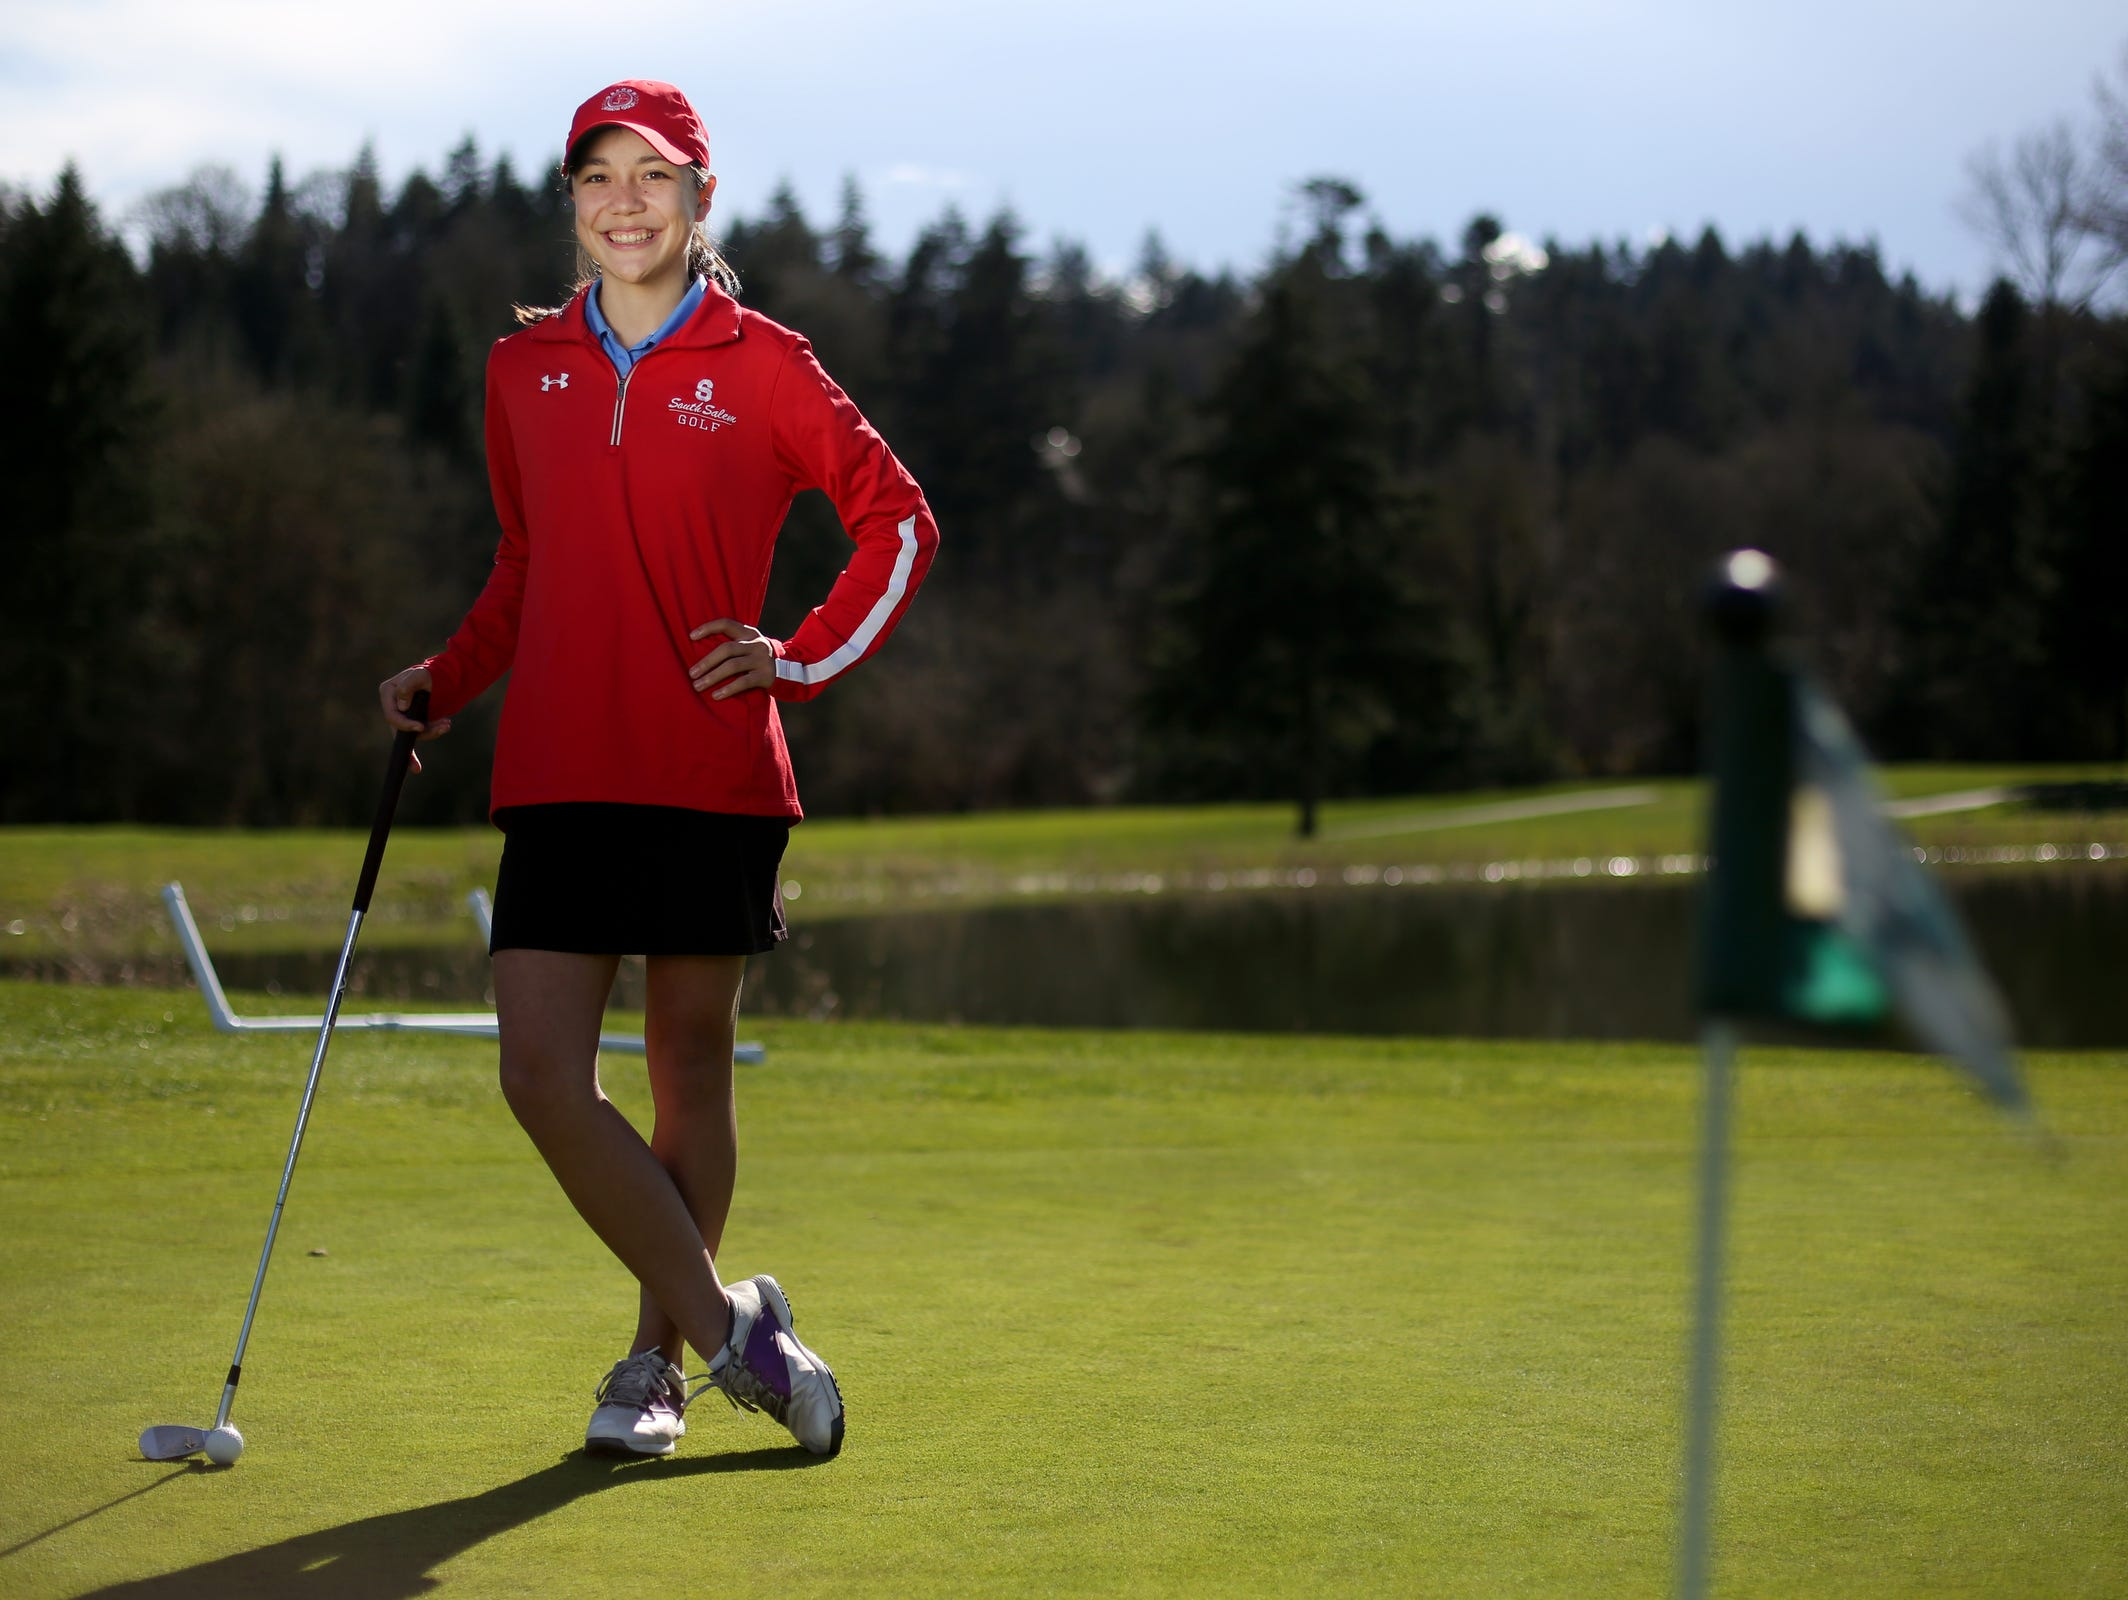 Ashley Zhu, a junior golfer at South Salem High School, stands for a photo at Creekside Golf Course in Salem on Tuesday, March 21, 2017.